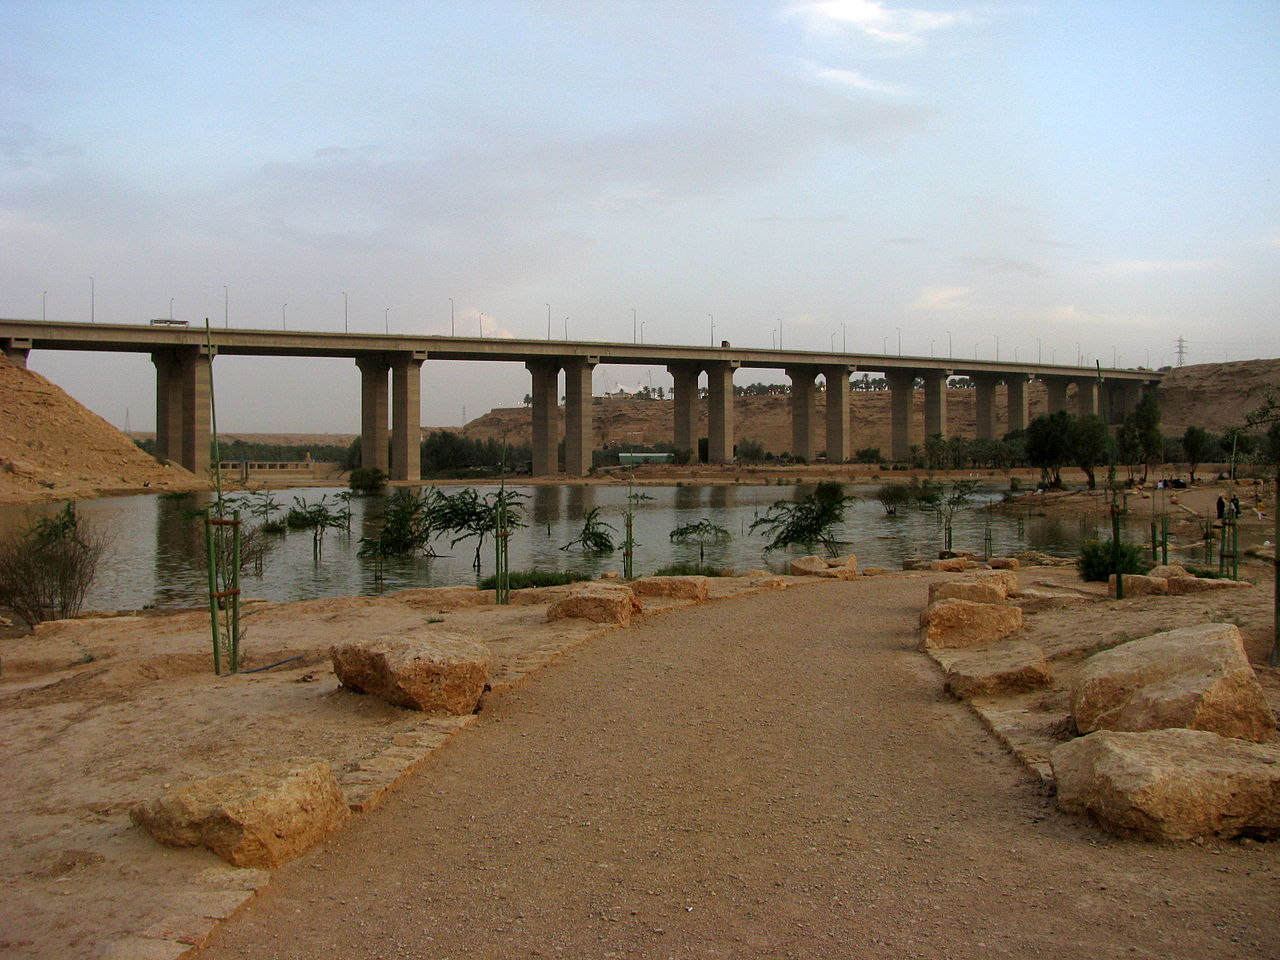 Lake at Wadi Hanifah